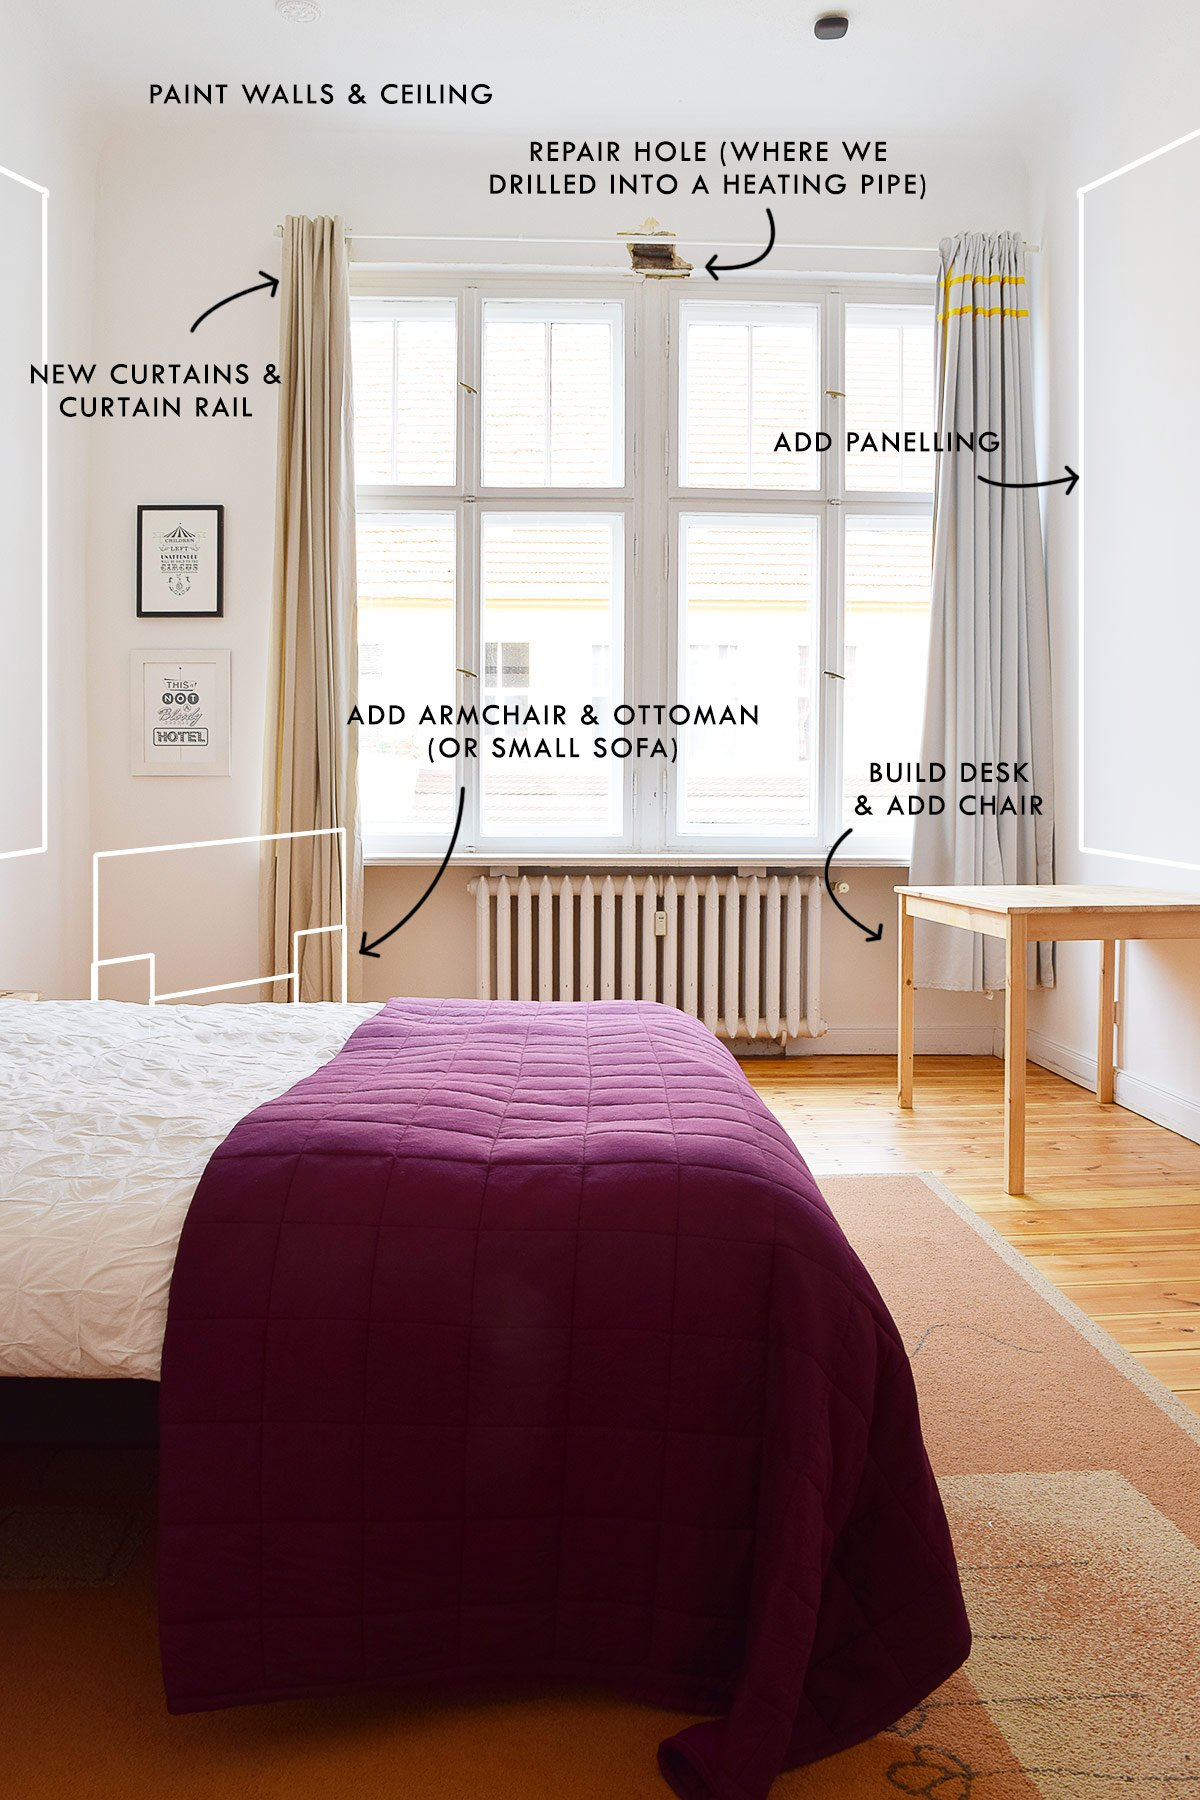 Guest Bedroom Updates - Our Airbnb Plans | Little House On The Corner